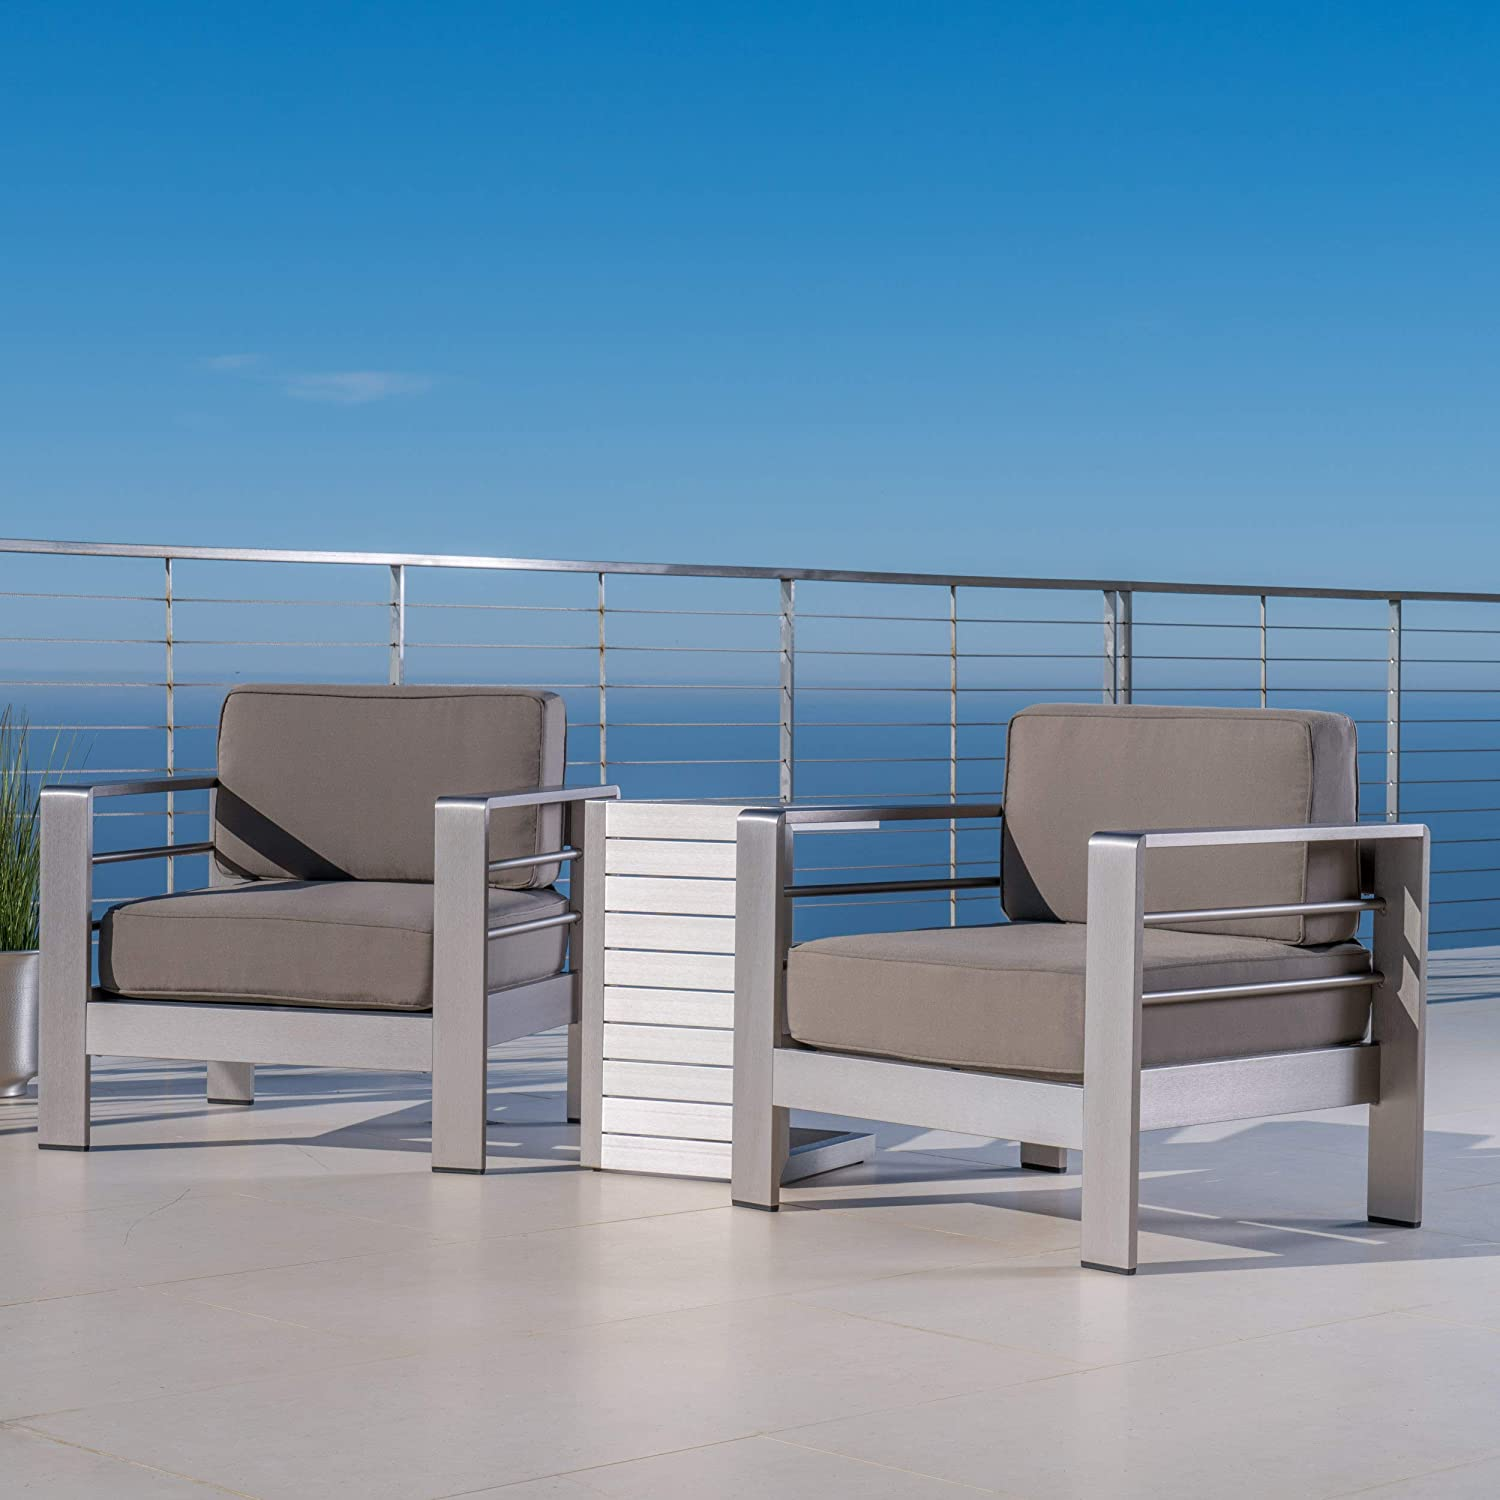 Christopher Knight Home 300476 Crested Bay Outdoor Aluminum Patio Chairs with Side Table Chat Set Khaki Silver